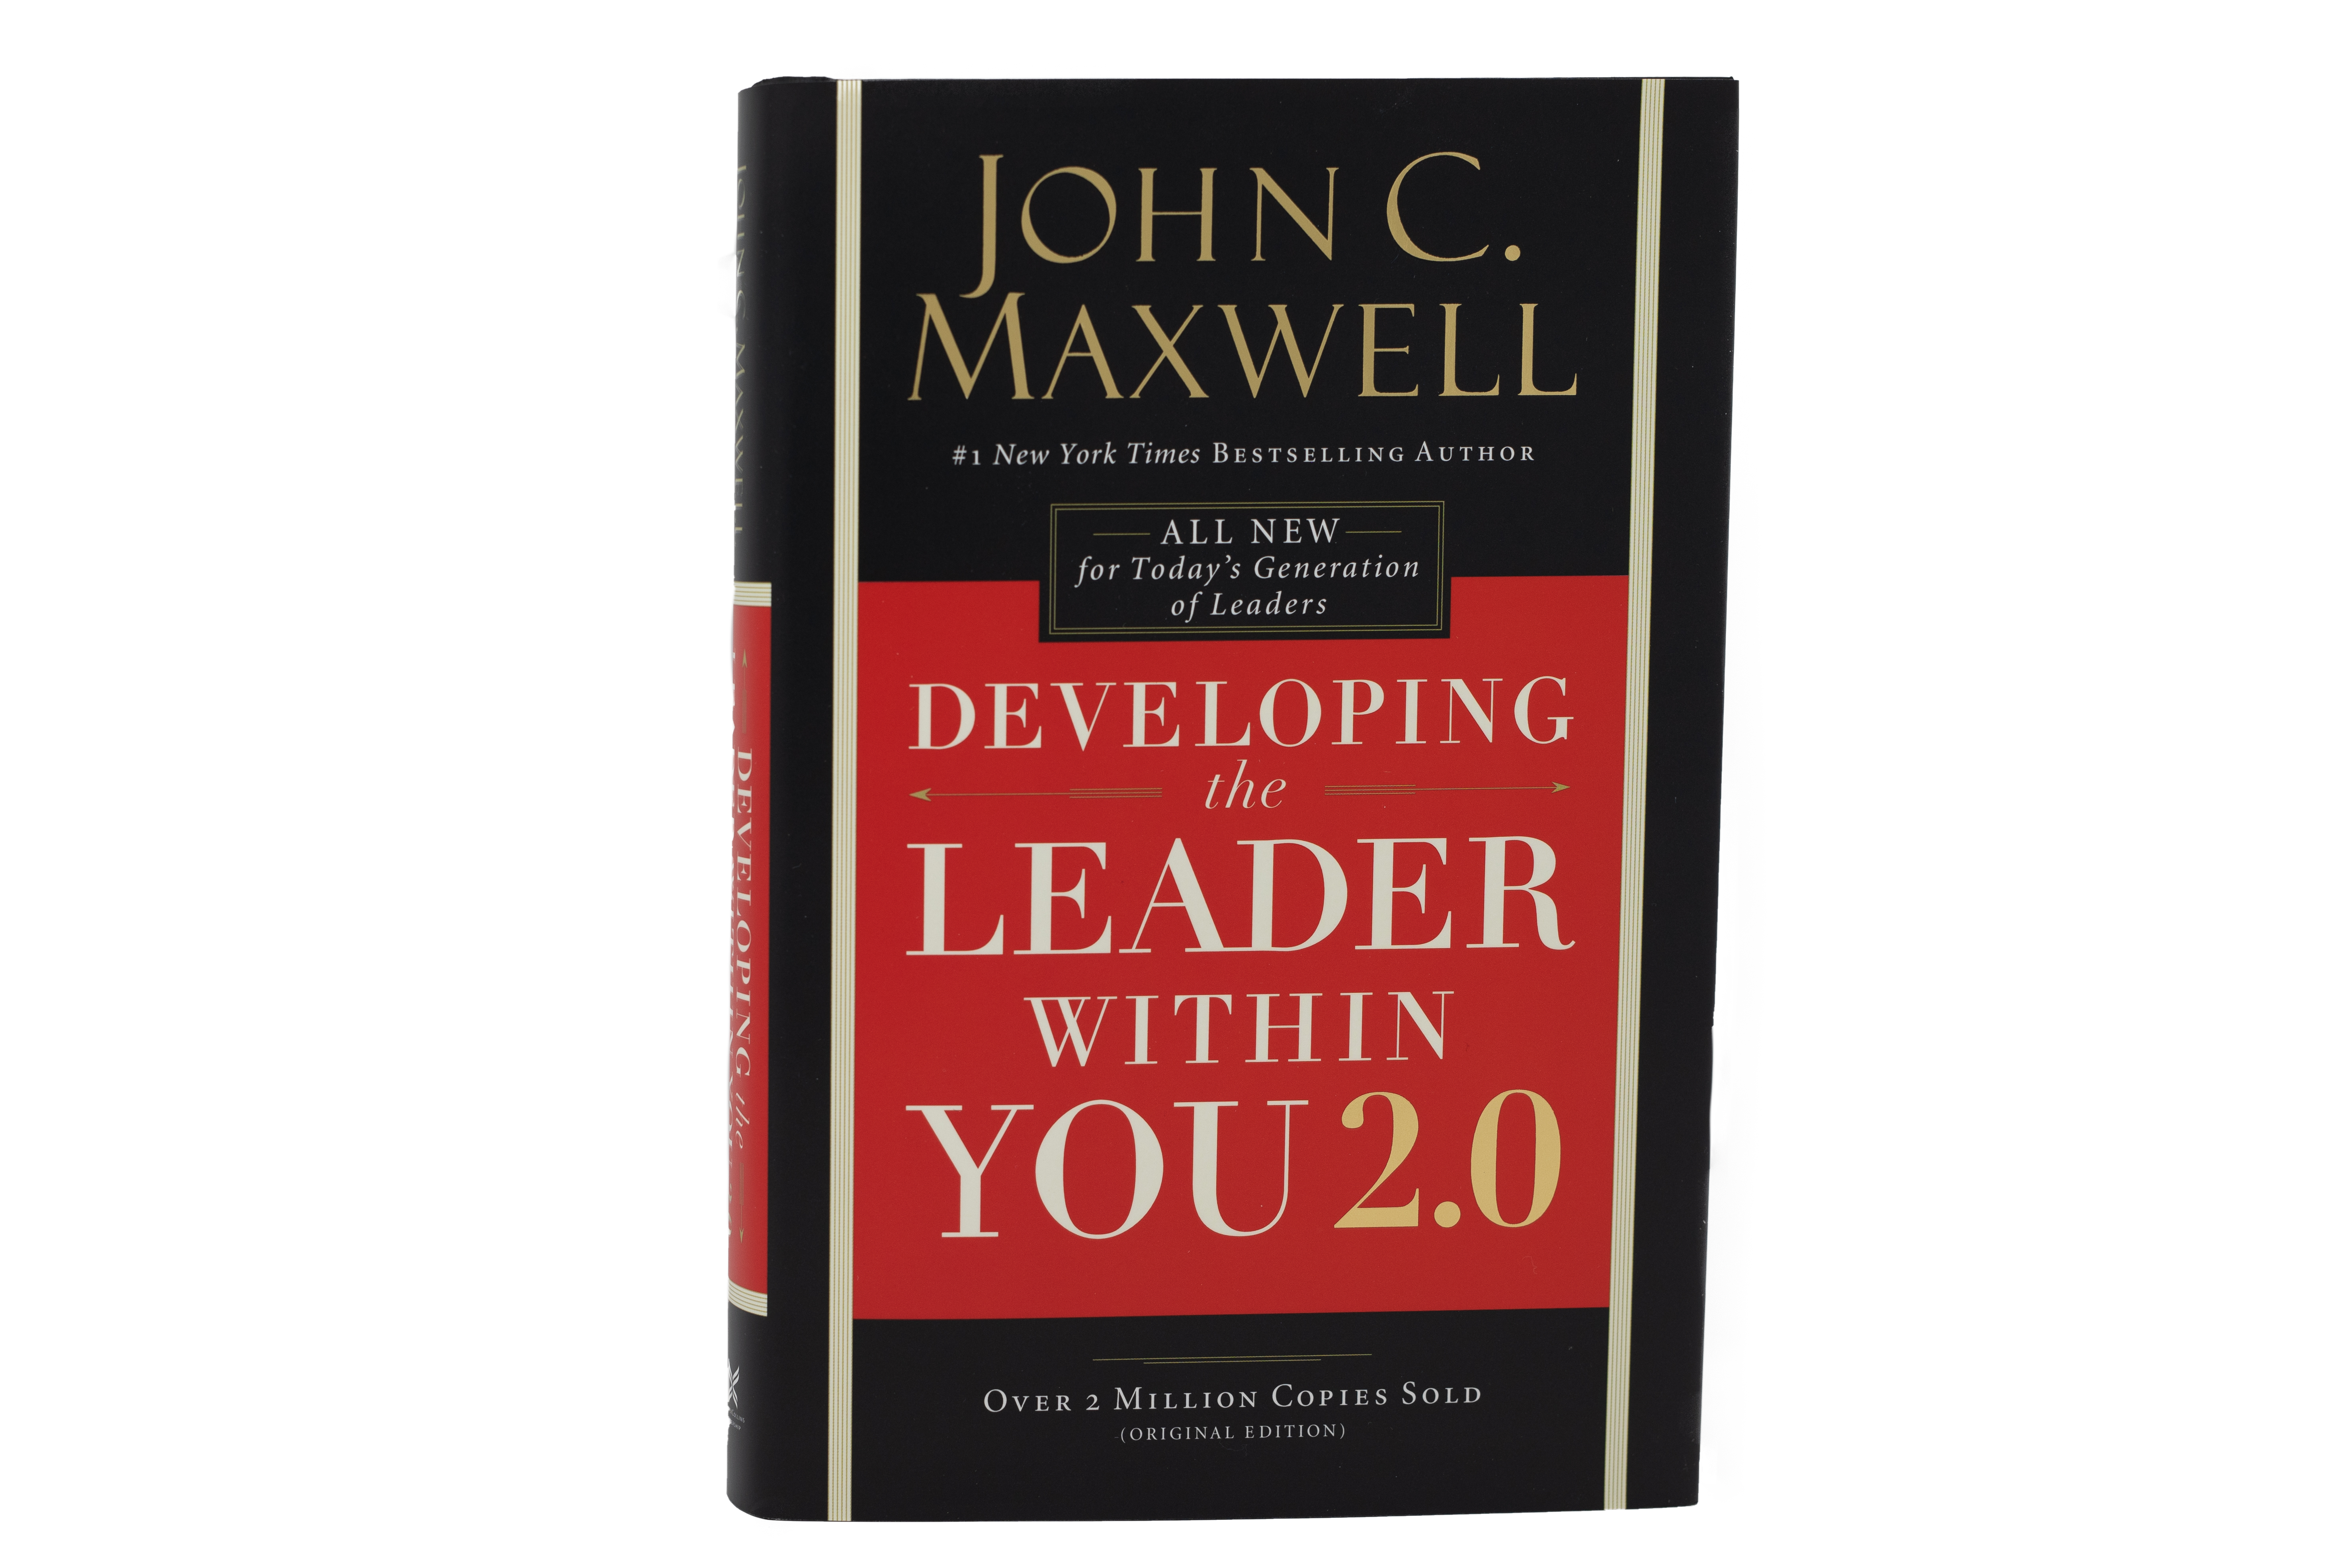 Developing the Leader Within You 2.0 - [Hardcover]